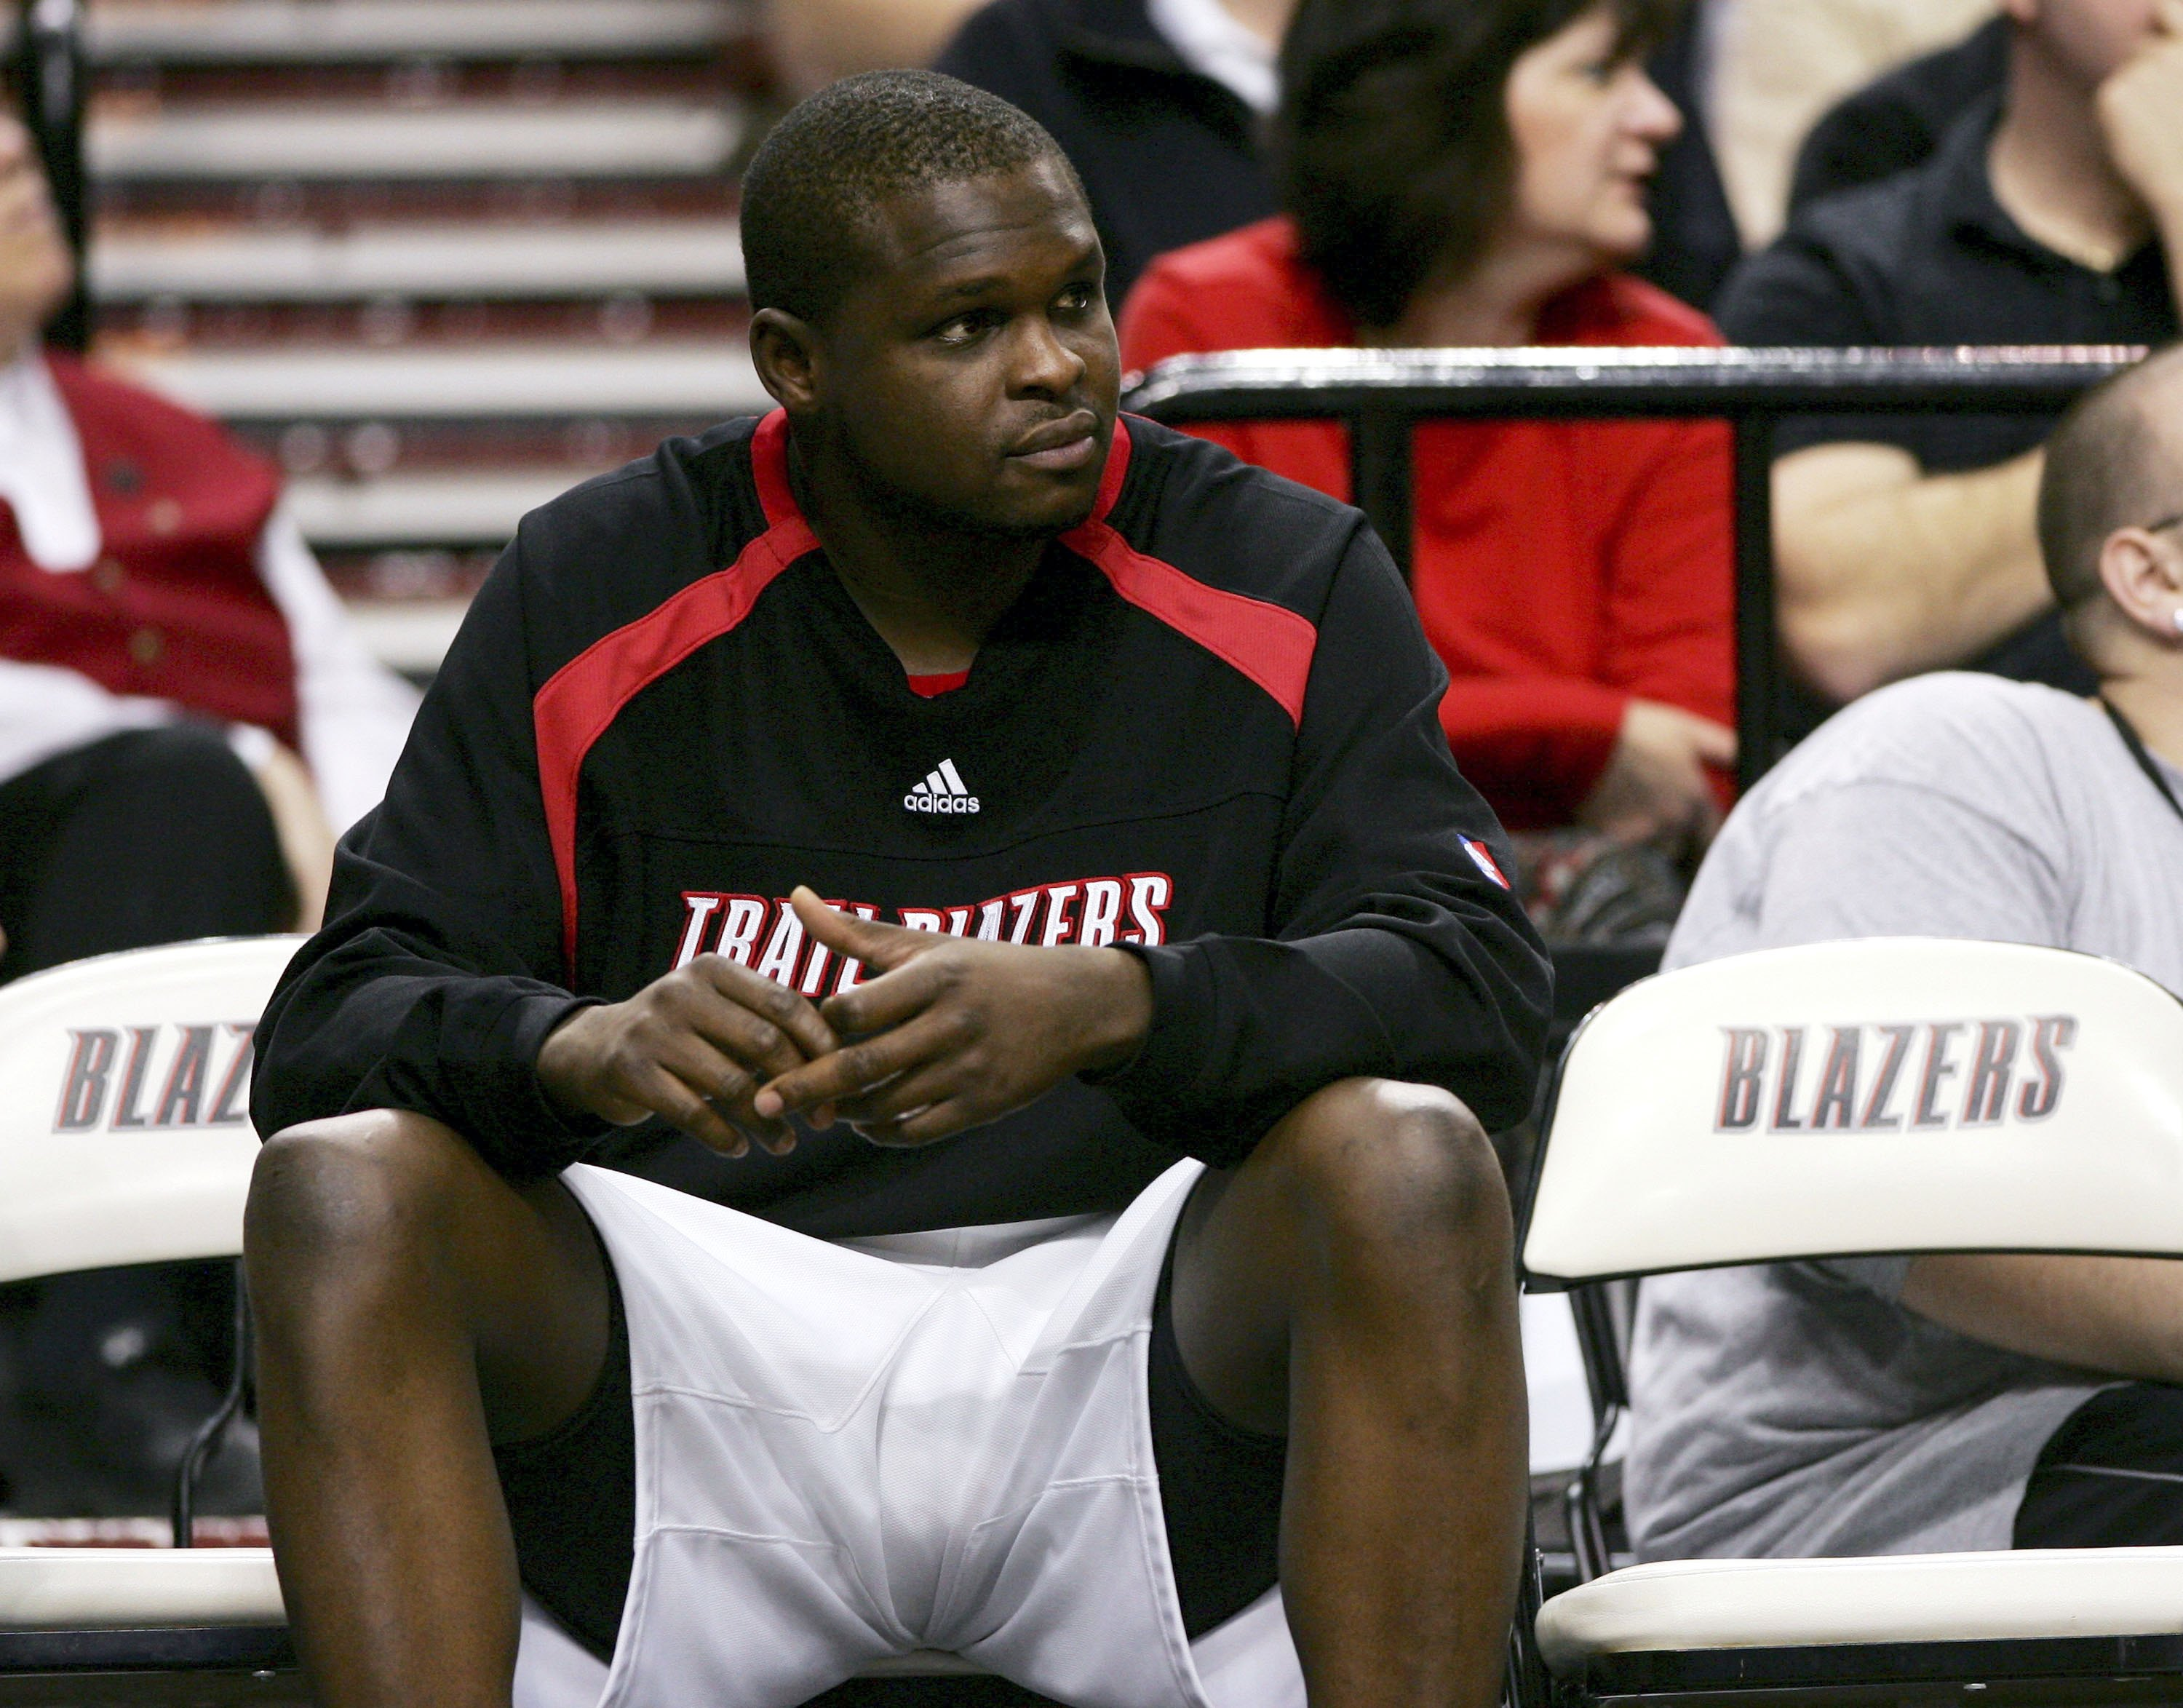 PORTLAND, OR - JANUARY 03: Zach Randolph #50 of the Portland Trail Blazers sits on the bench in a 99-81 loss to the New York Knicks on January 3, 2007 at the Rose Garden in Portland, Oregon. NOTE TO USER: User expressly acknowledges and agrees that, by downloading and or using this Photograph, user is consenting to the terms and conditions of the Getty Images License Agreement.